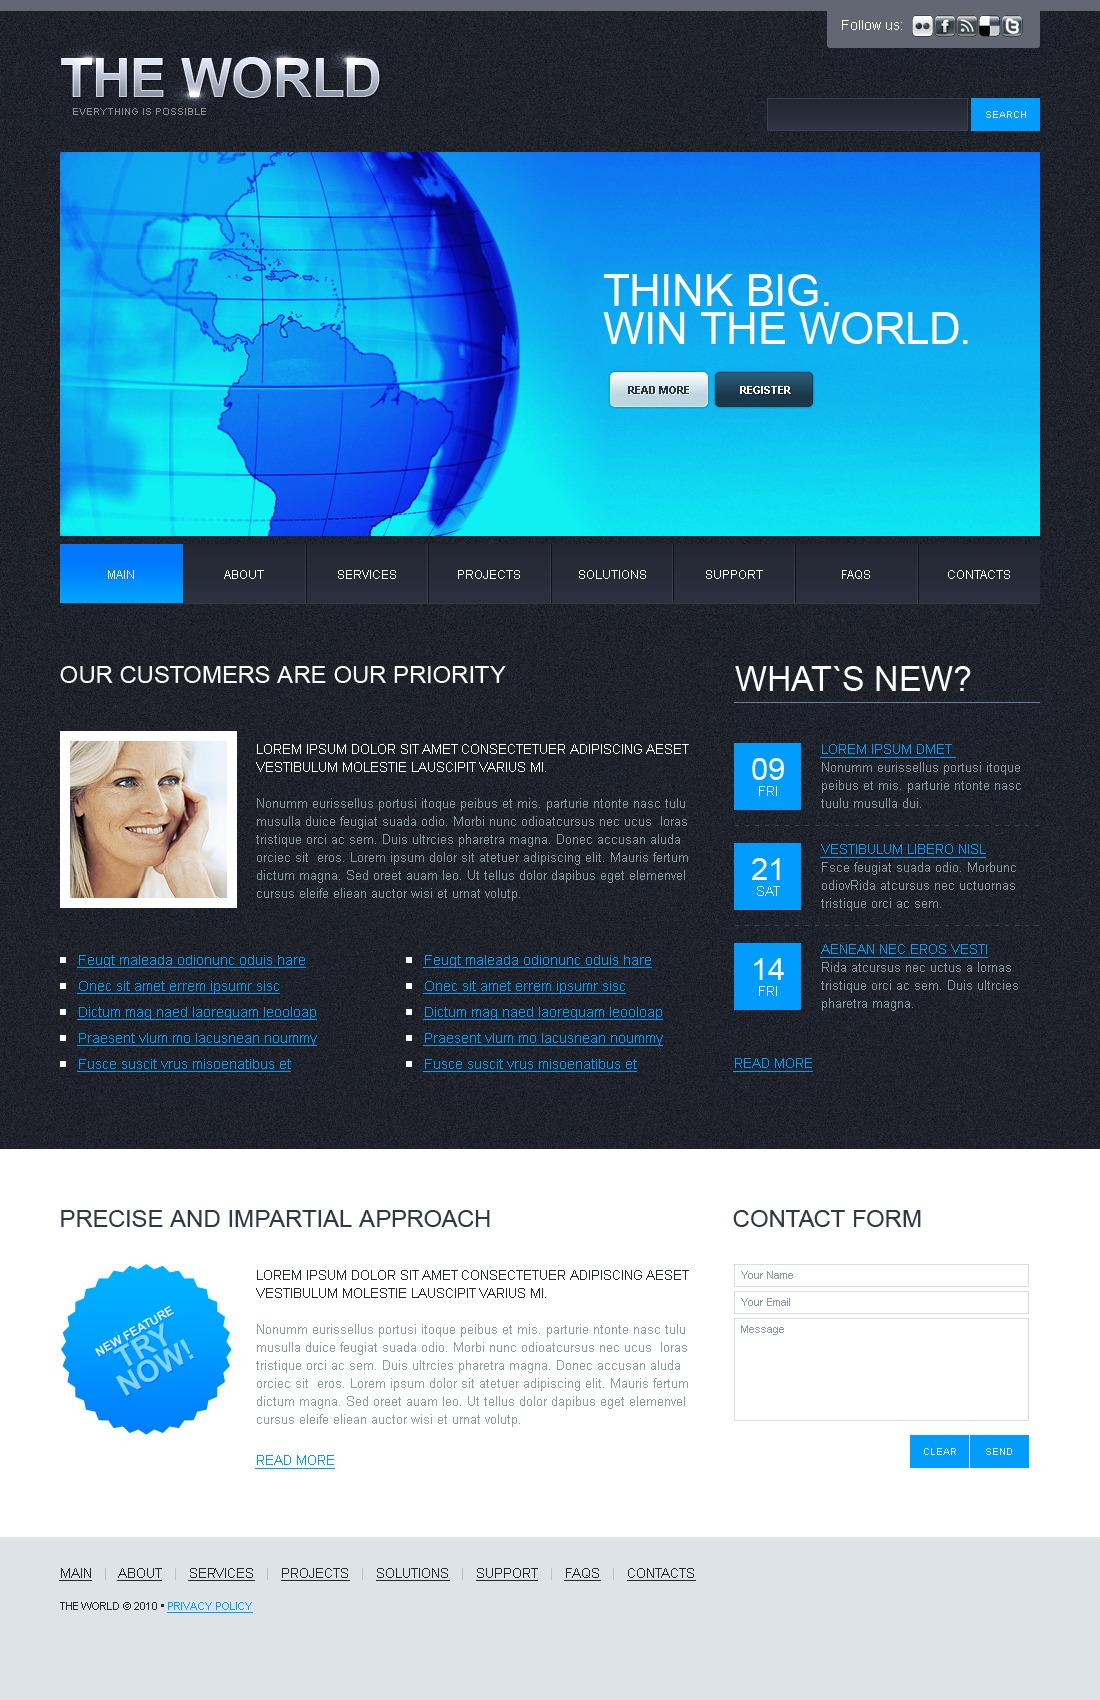 The The World PSD Design 54155, one of the best PSD templates of its kind (business, wide), also known as the world PSD template, business company PSD template, corporate solutions PSD template, innovations PSD template, contacts PSD template, service PSD template, support PSD template, information dealer PSD template, stocks PSD template, team PSD template, success PSD template, money PSD template, marketing PSD template, director PSD template, manager PSD template, analytics PSD template, planning PSD template, limited PSD template, office PSD template, sales and related with the world, business company, corporate solutions, innovations, contacts, service, support, information dealer, stocks, team, success, money, marketing, director, manager, analytics, planning, limited, office, sales, etc.